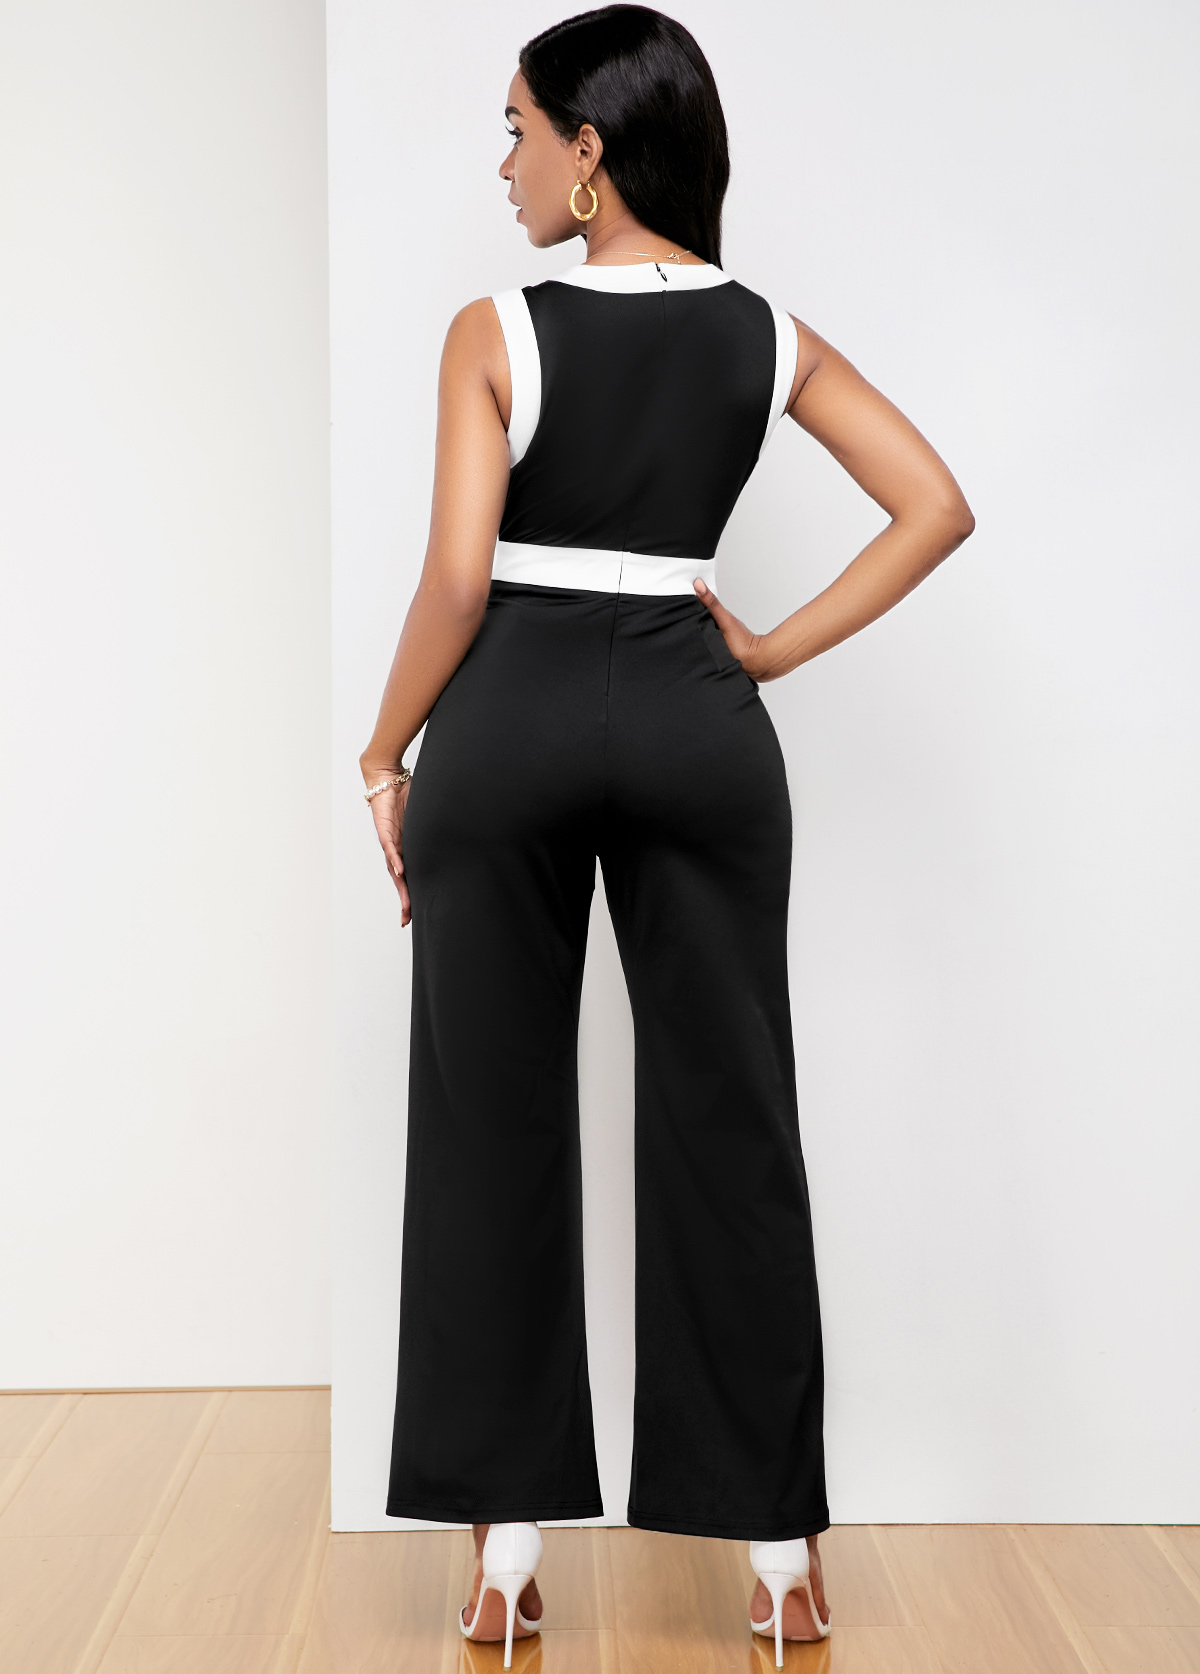 Black Contrast Piping Sleeveless Pocket Jumpsuit